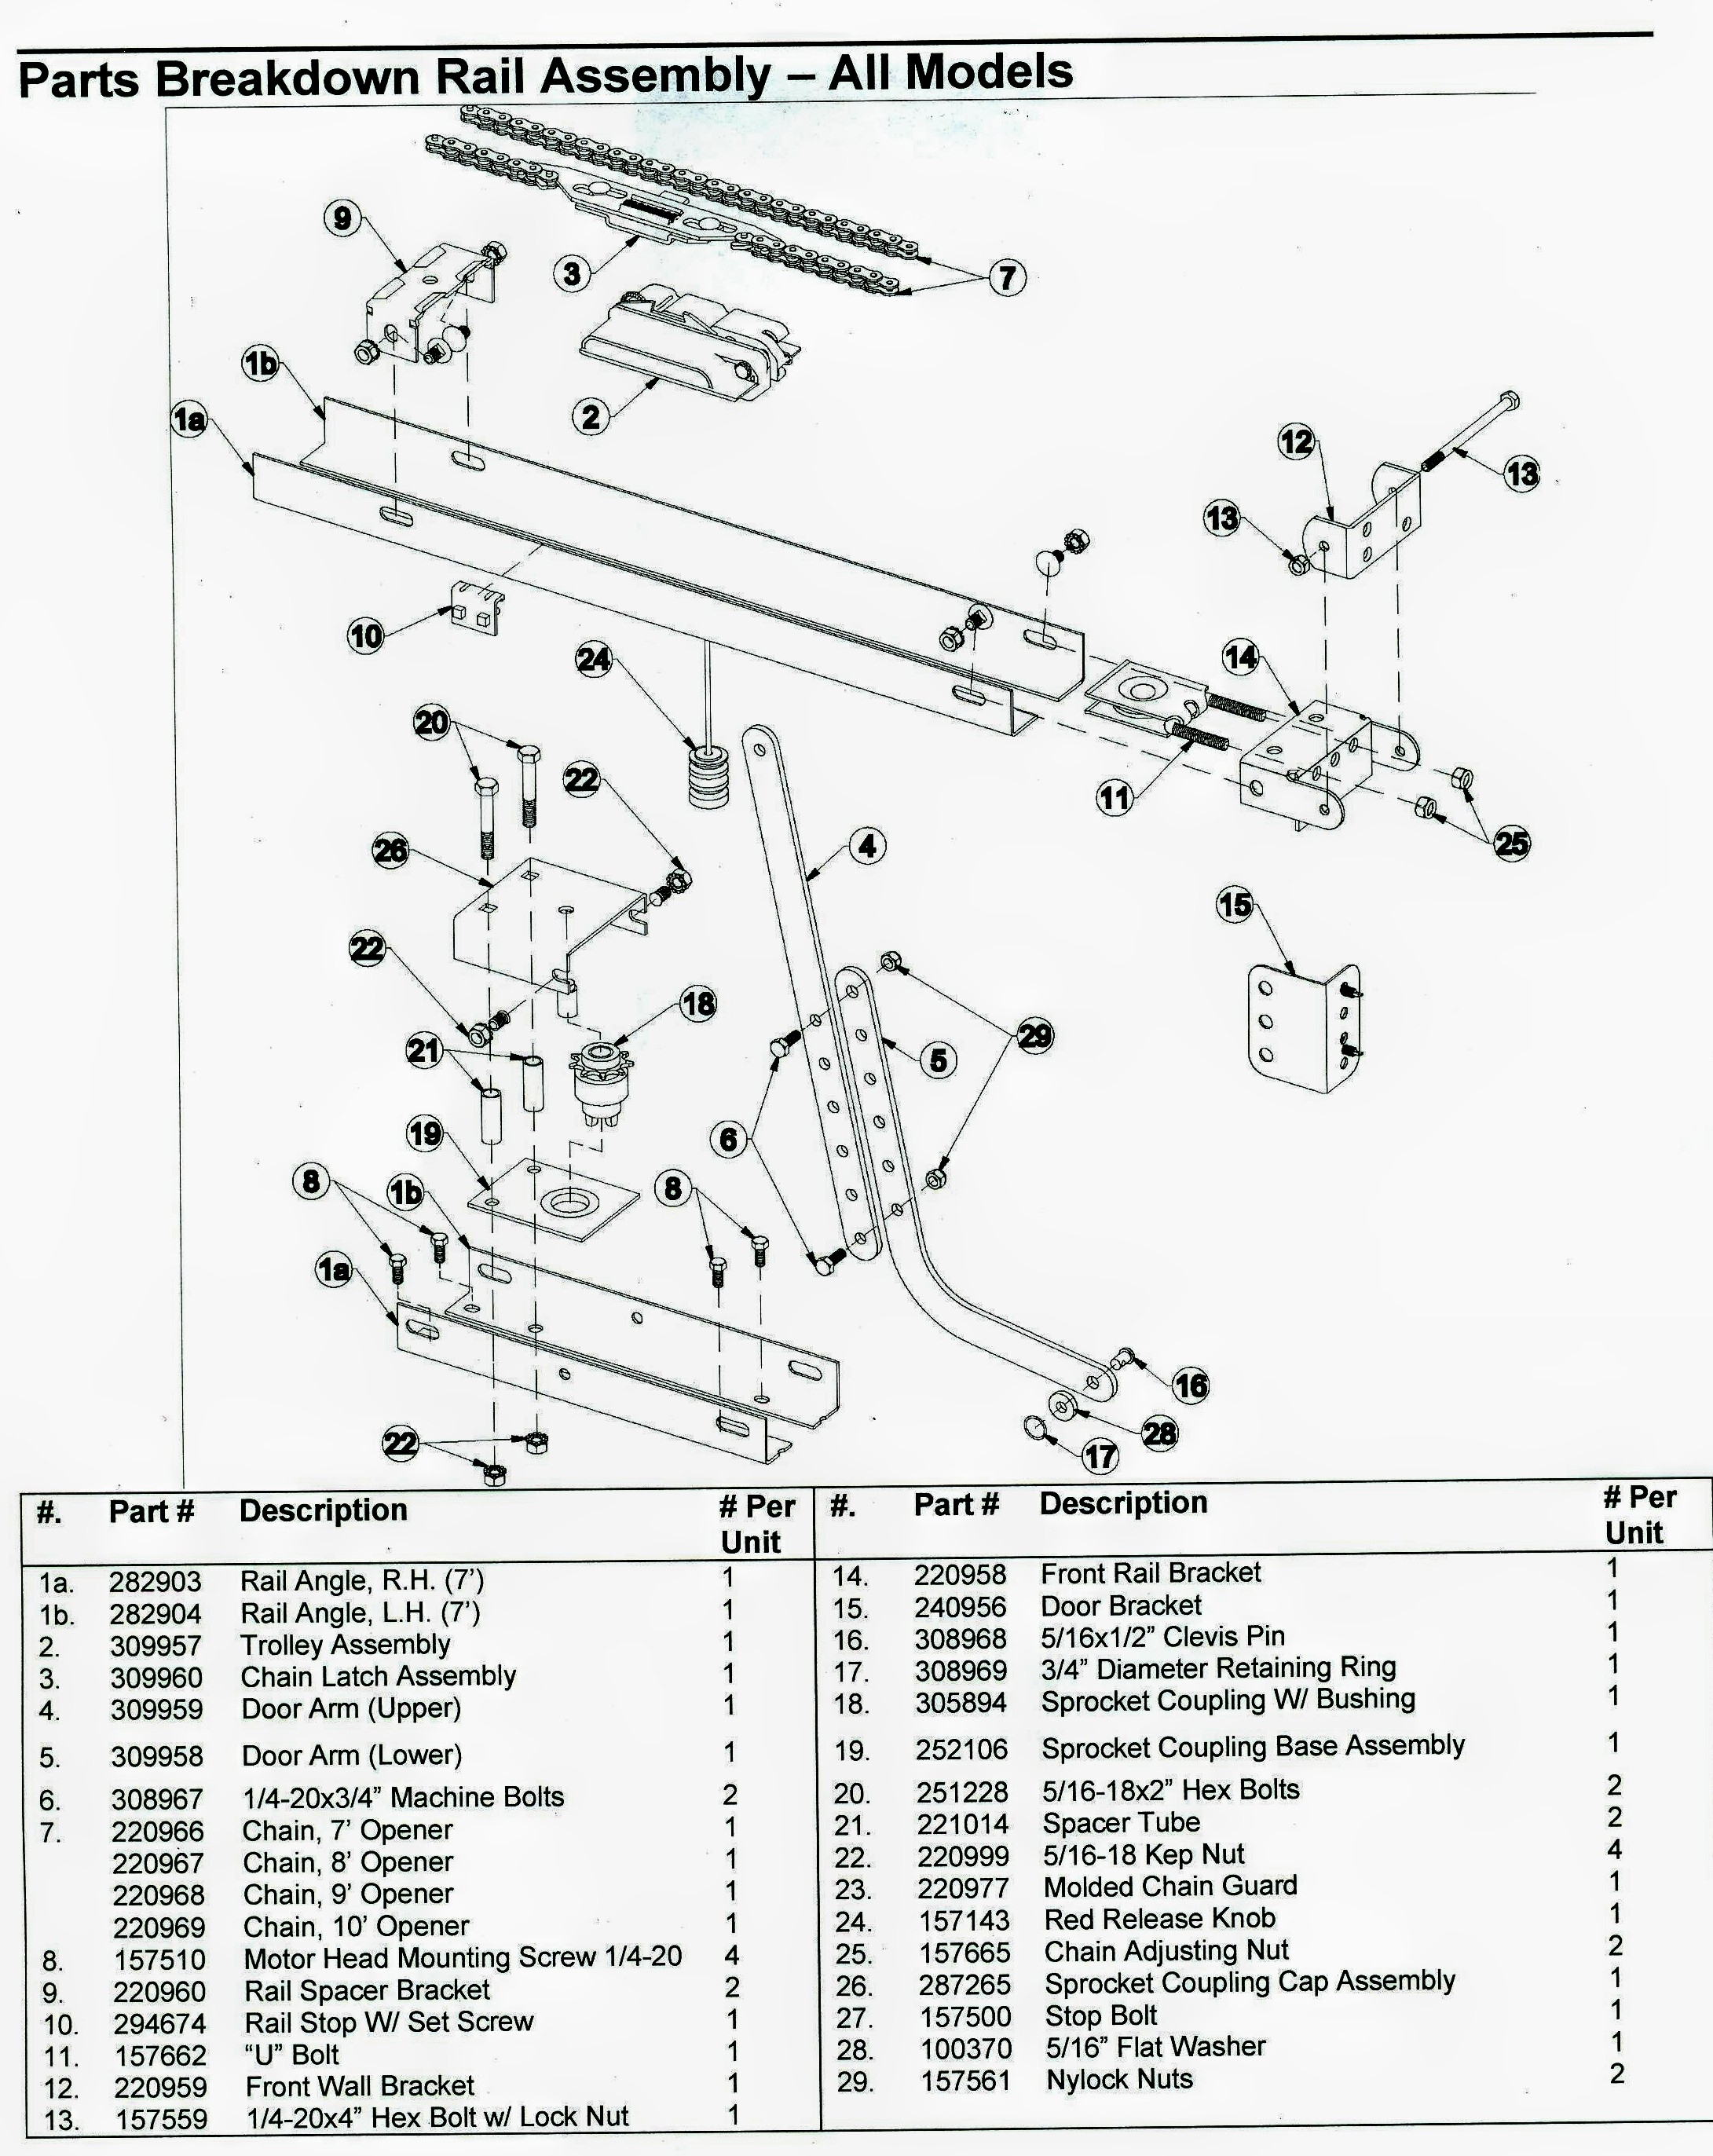 garage door wiring diagram pajero io radio genie opener parts automotive